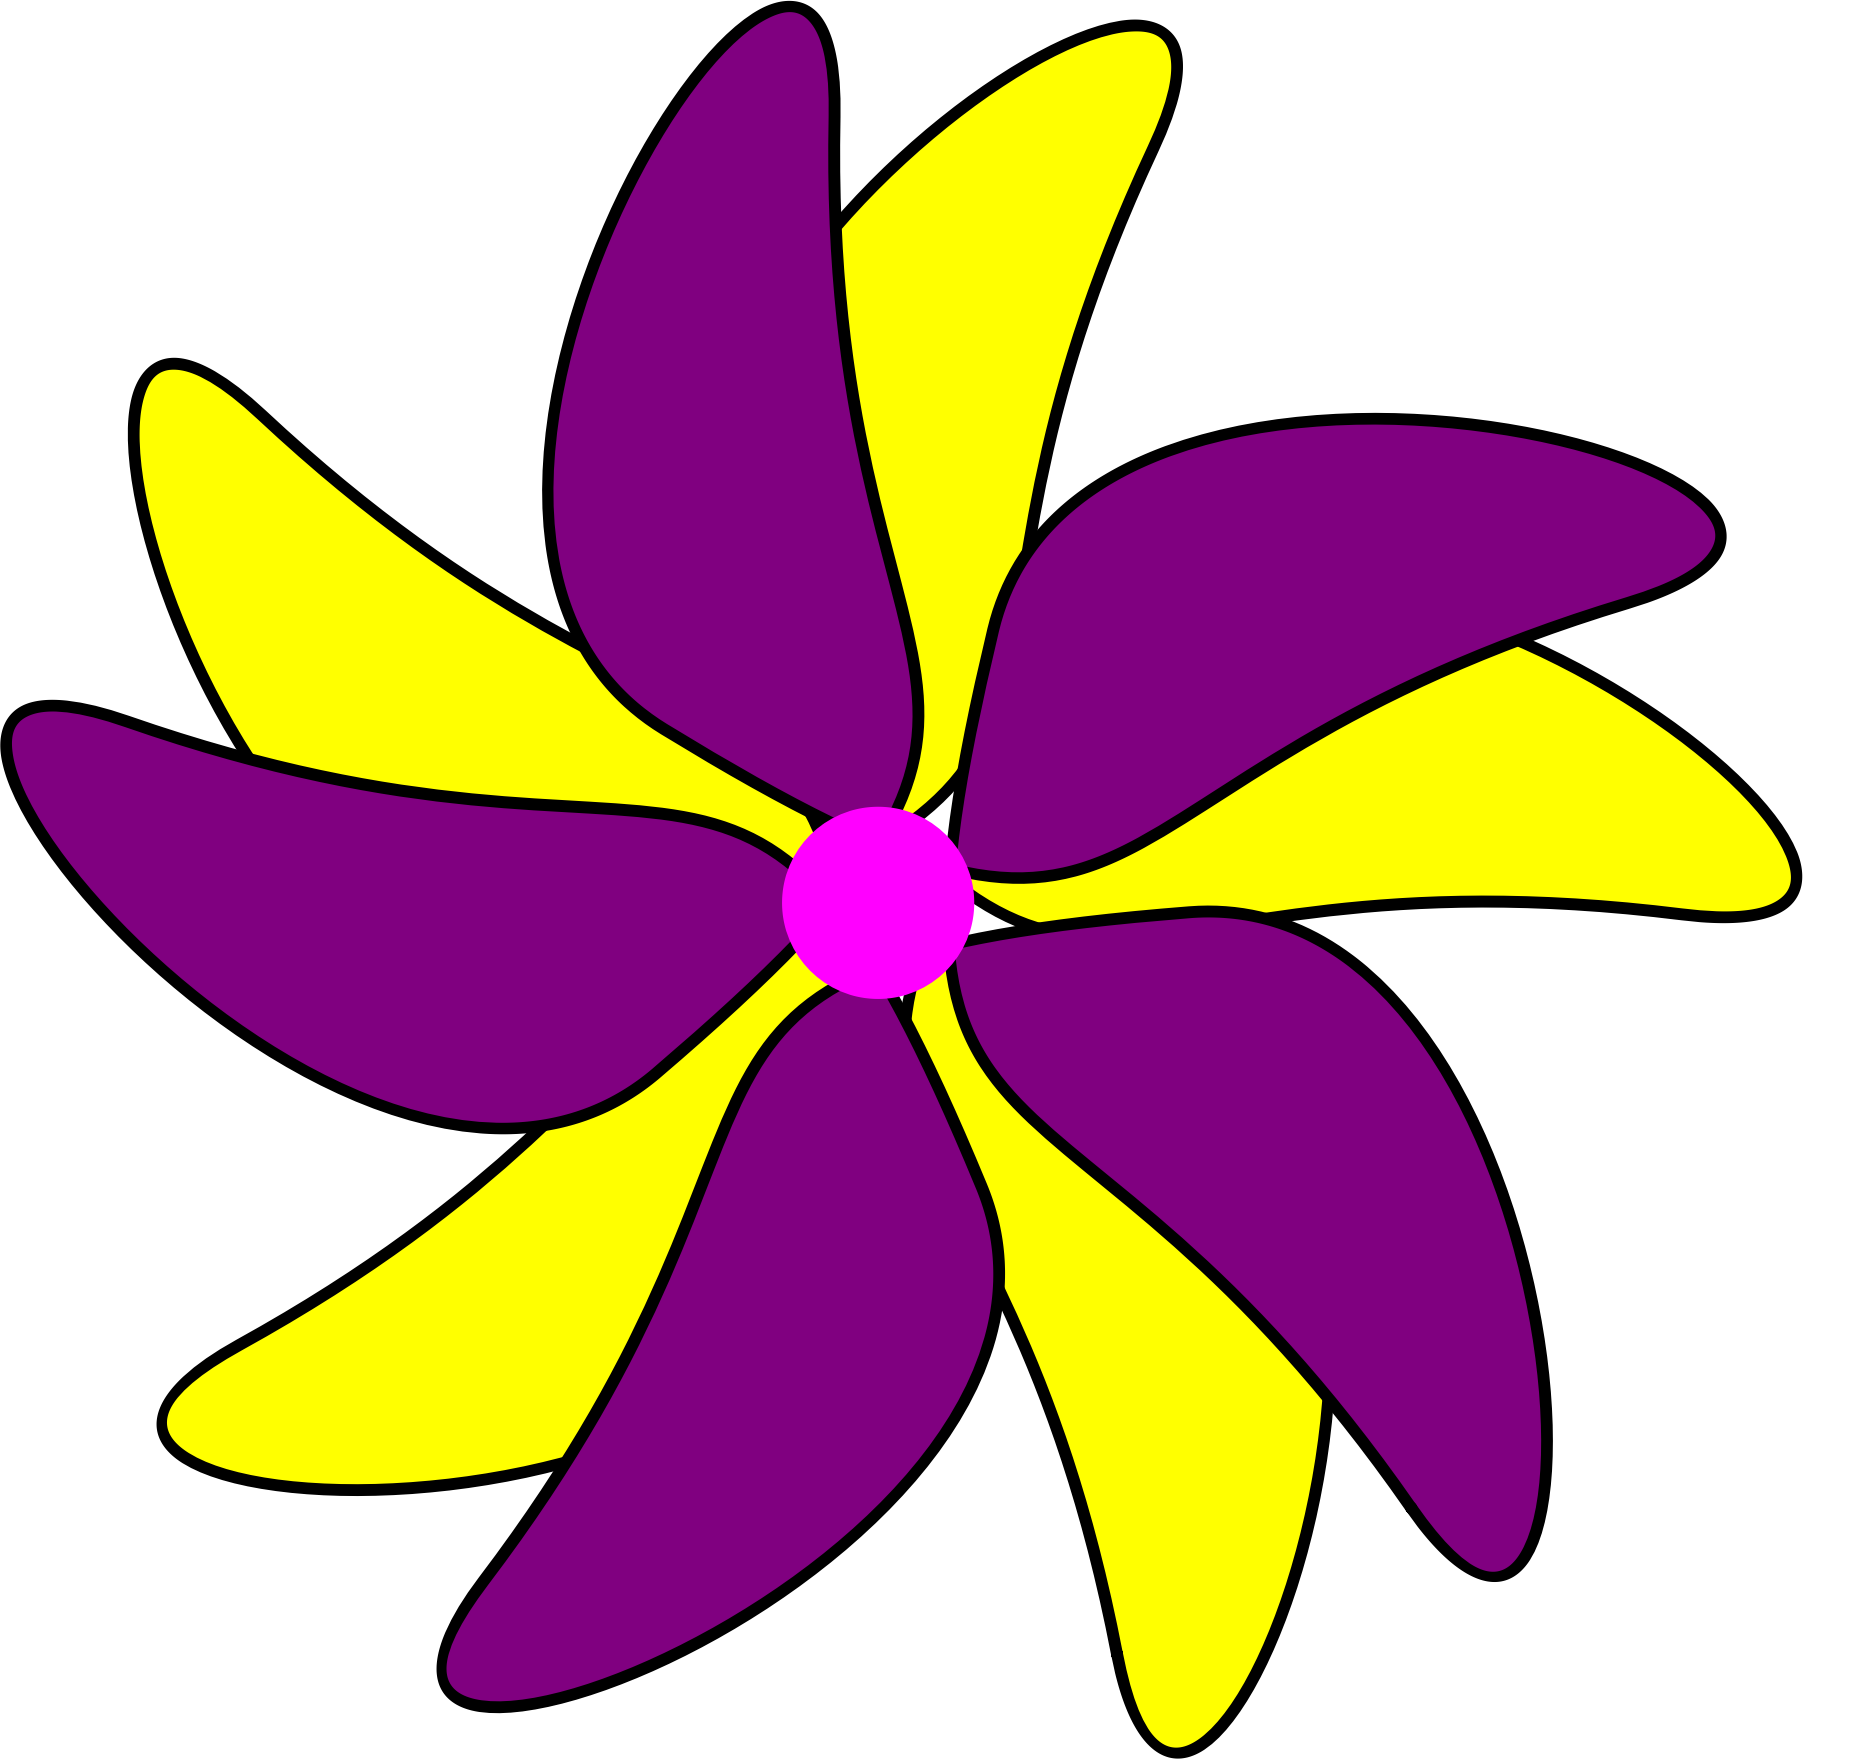 Flower Purple and Yellow